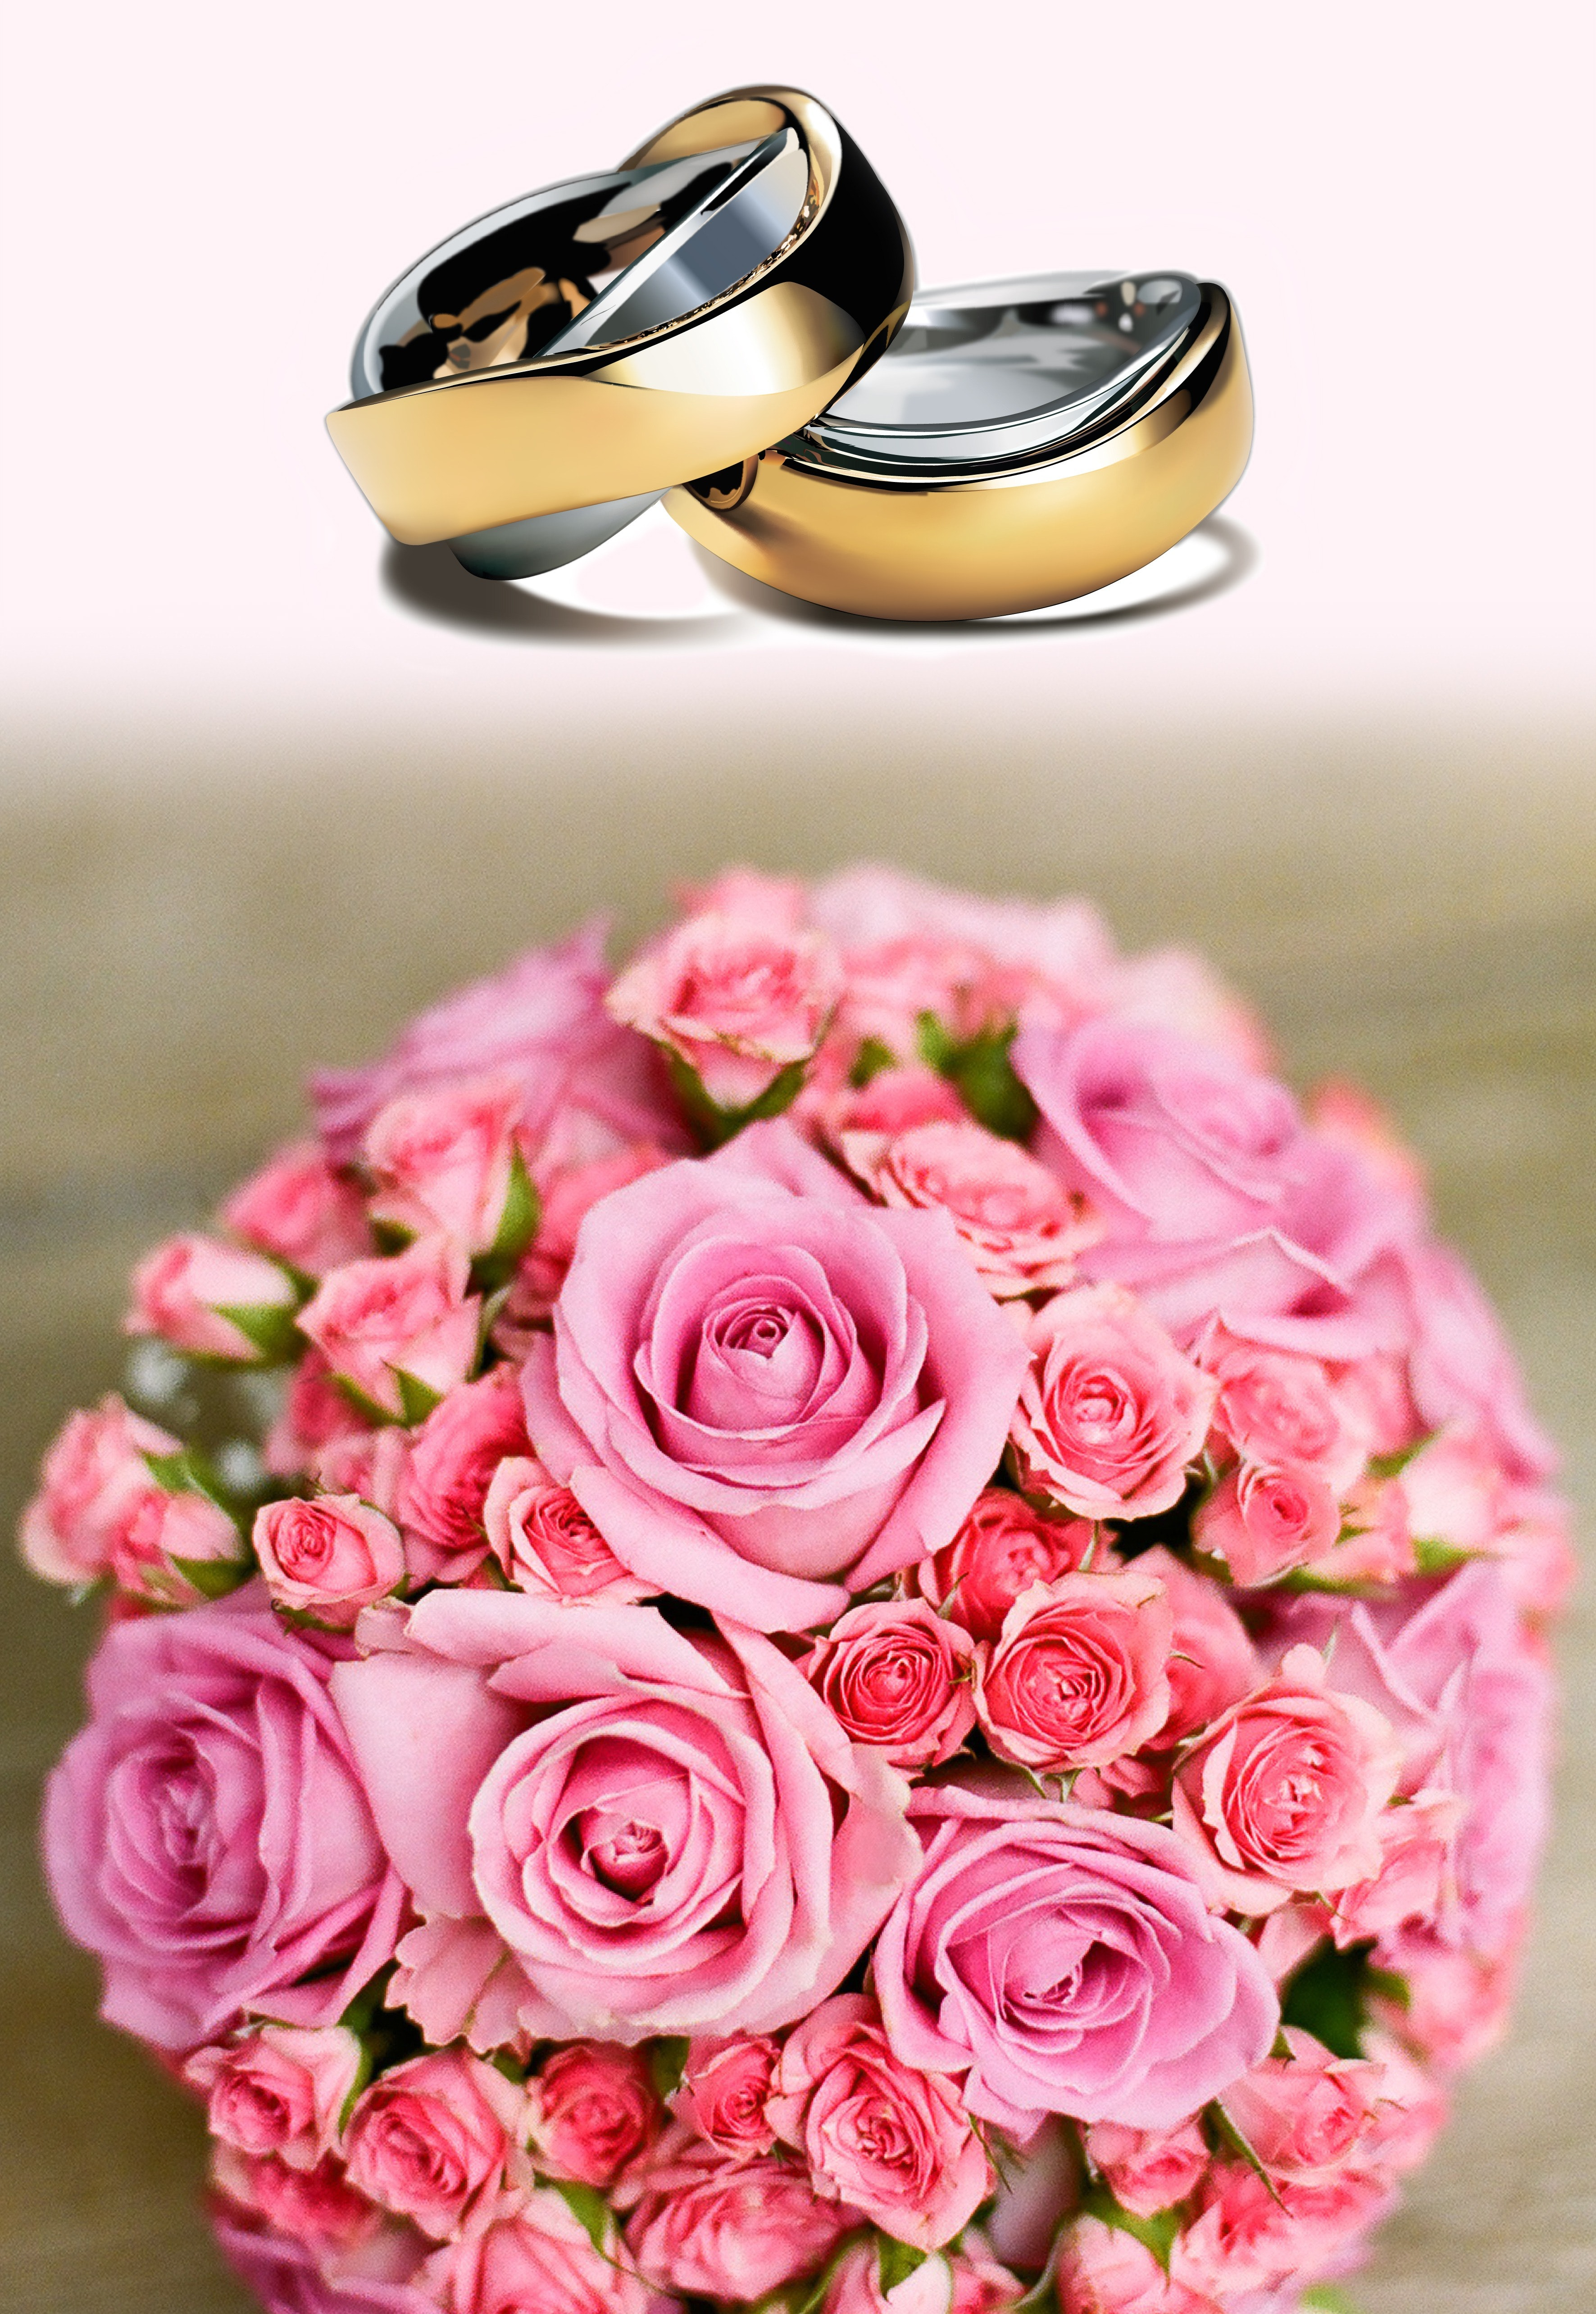 Gold and Silver Band Ring, Bouquet, Roses, Wedding, Wedding rings, HQ Photo